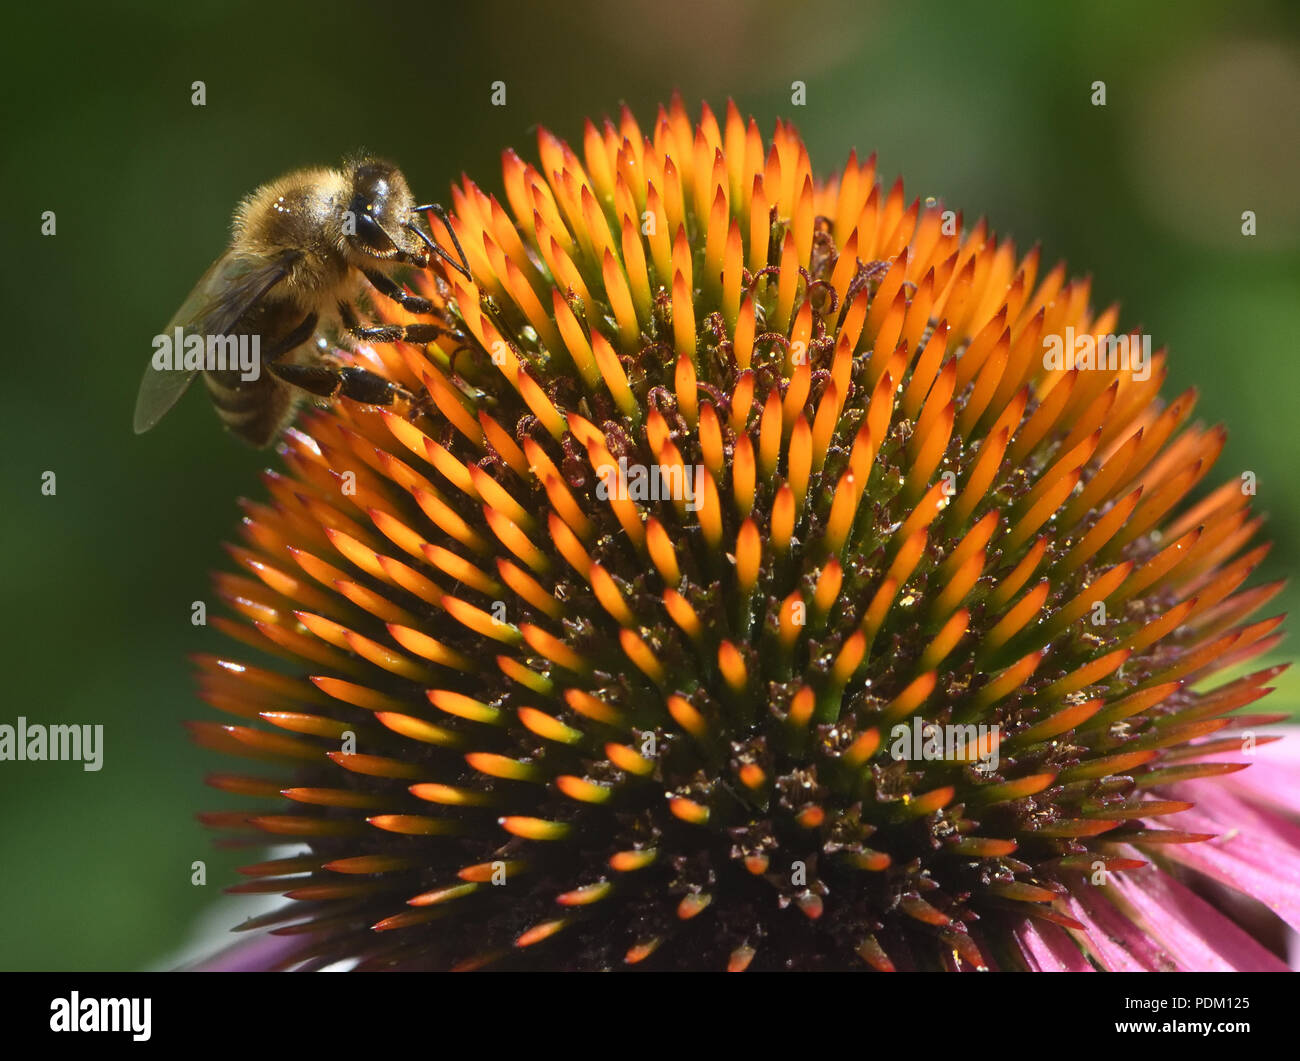 A honey bee (Apis mellifera) forages for nectar and pollen on an echinacea or coneflower (Echinacea purpura).  Bedgebury Forest, Hawkhurst, Kent, UK. - Stock Image